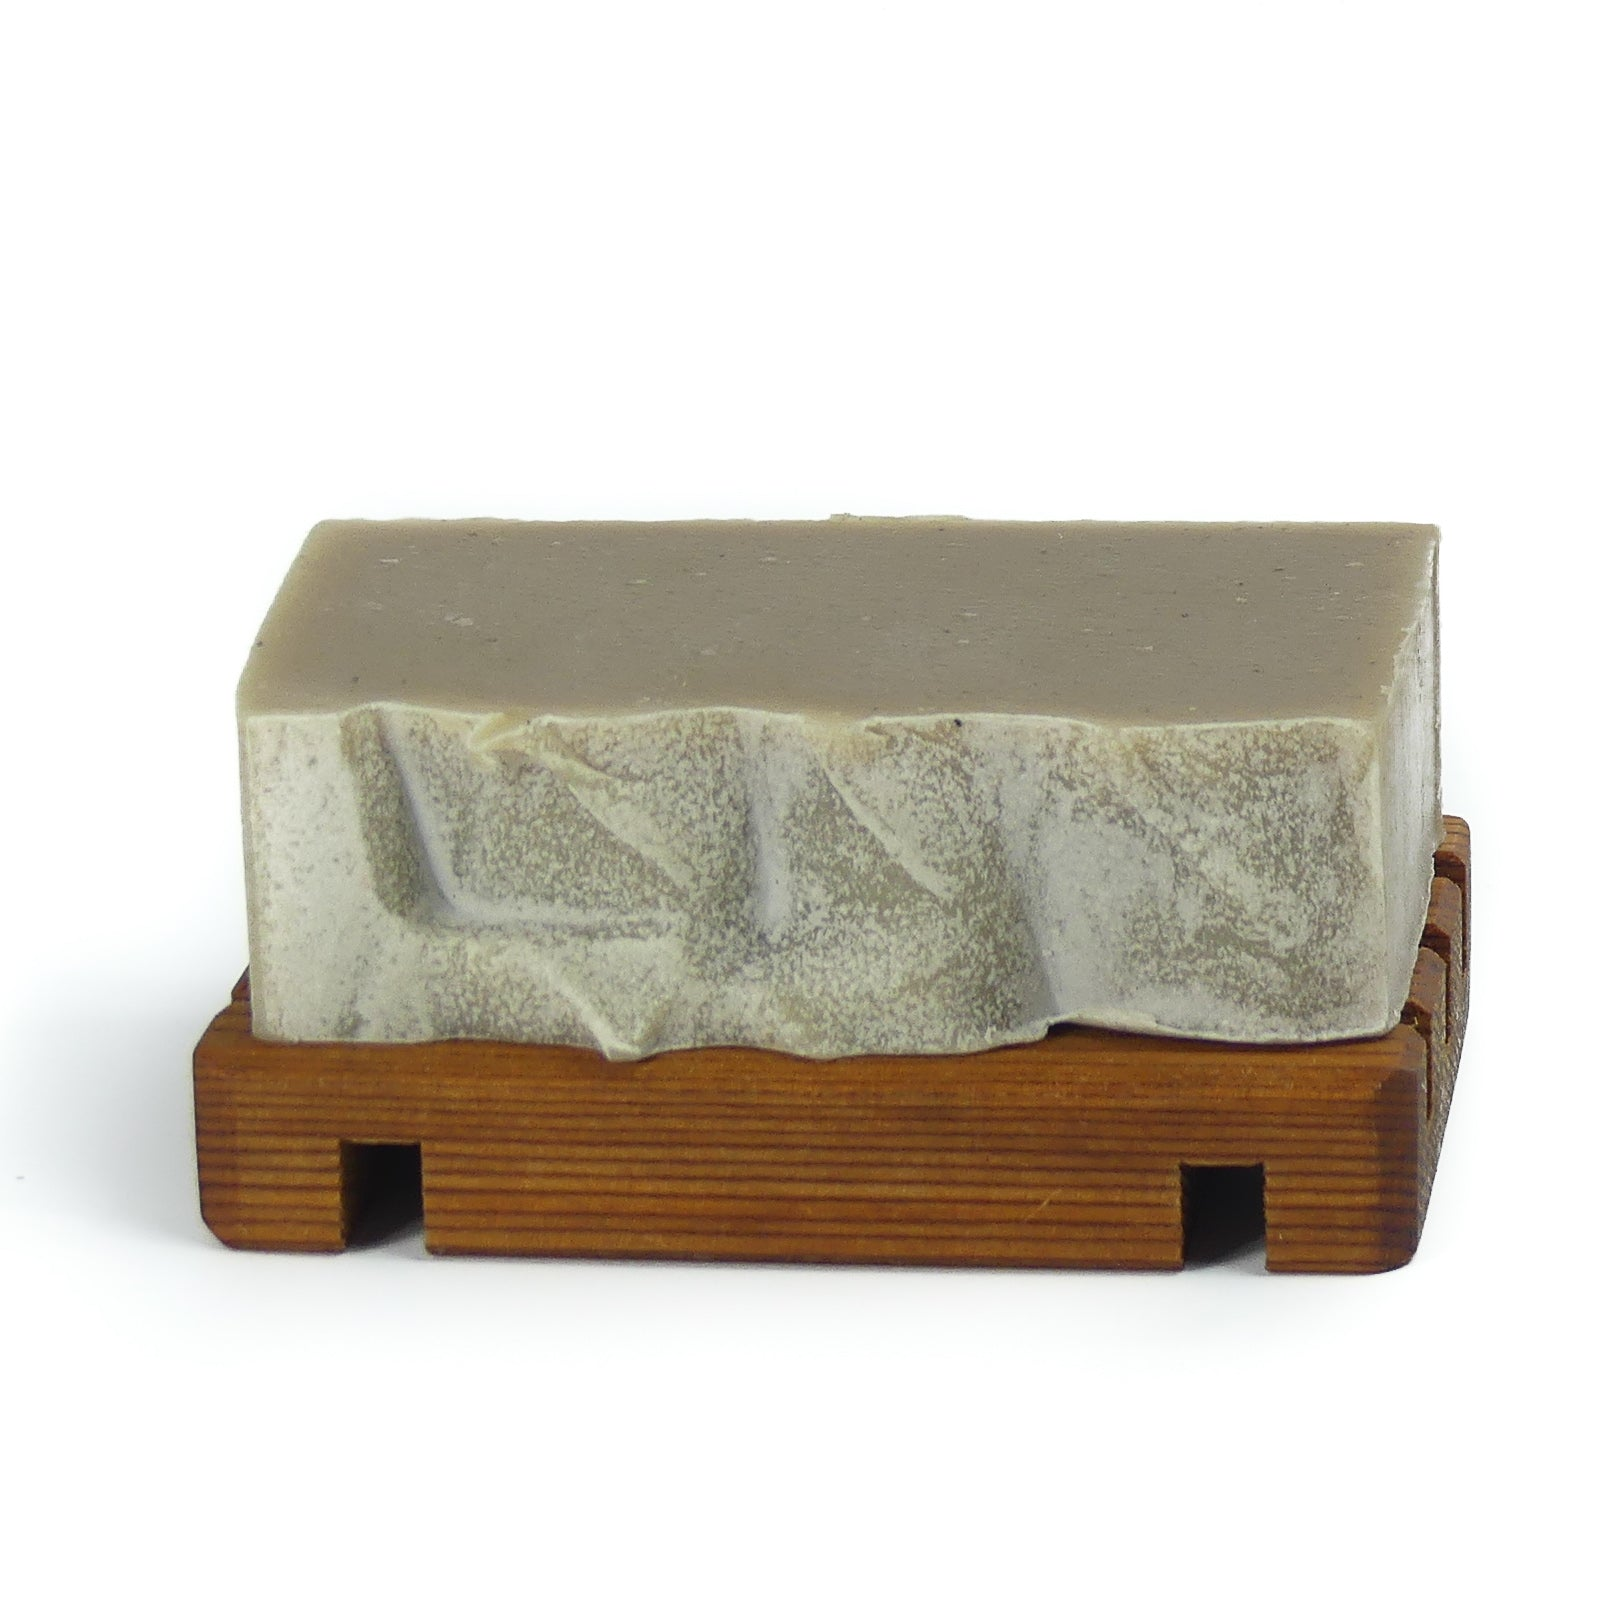 Goat Milk, Bentonite Clay, Peppermint & Hemp Oil Soap - 4 oz Bar